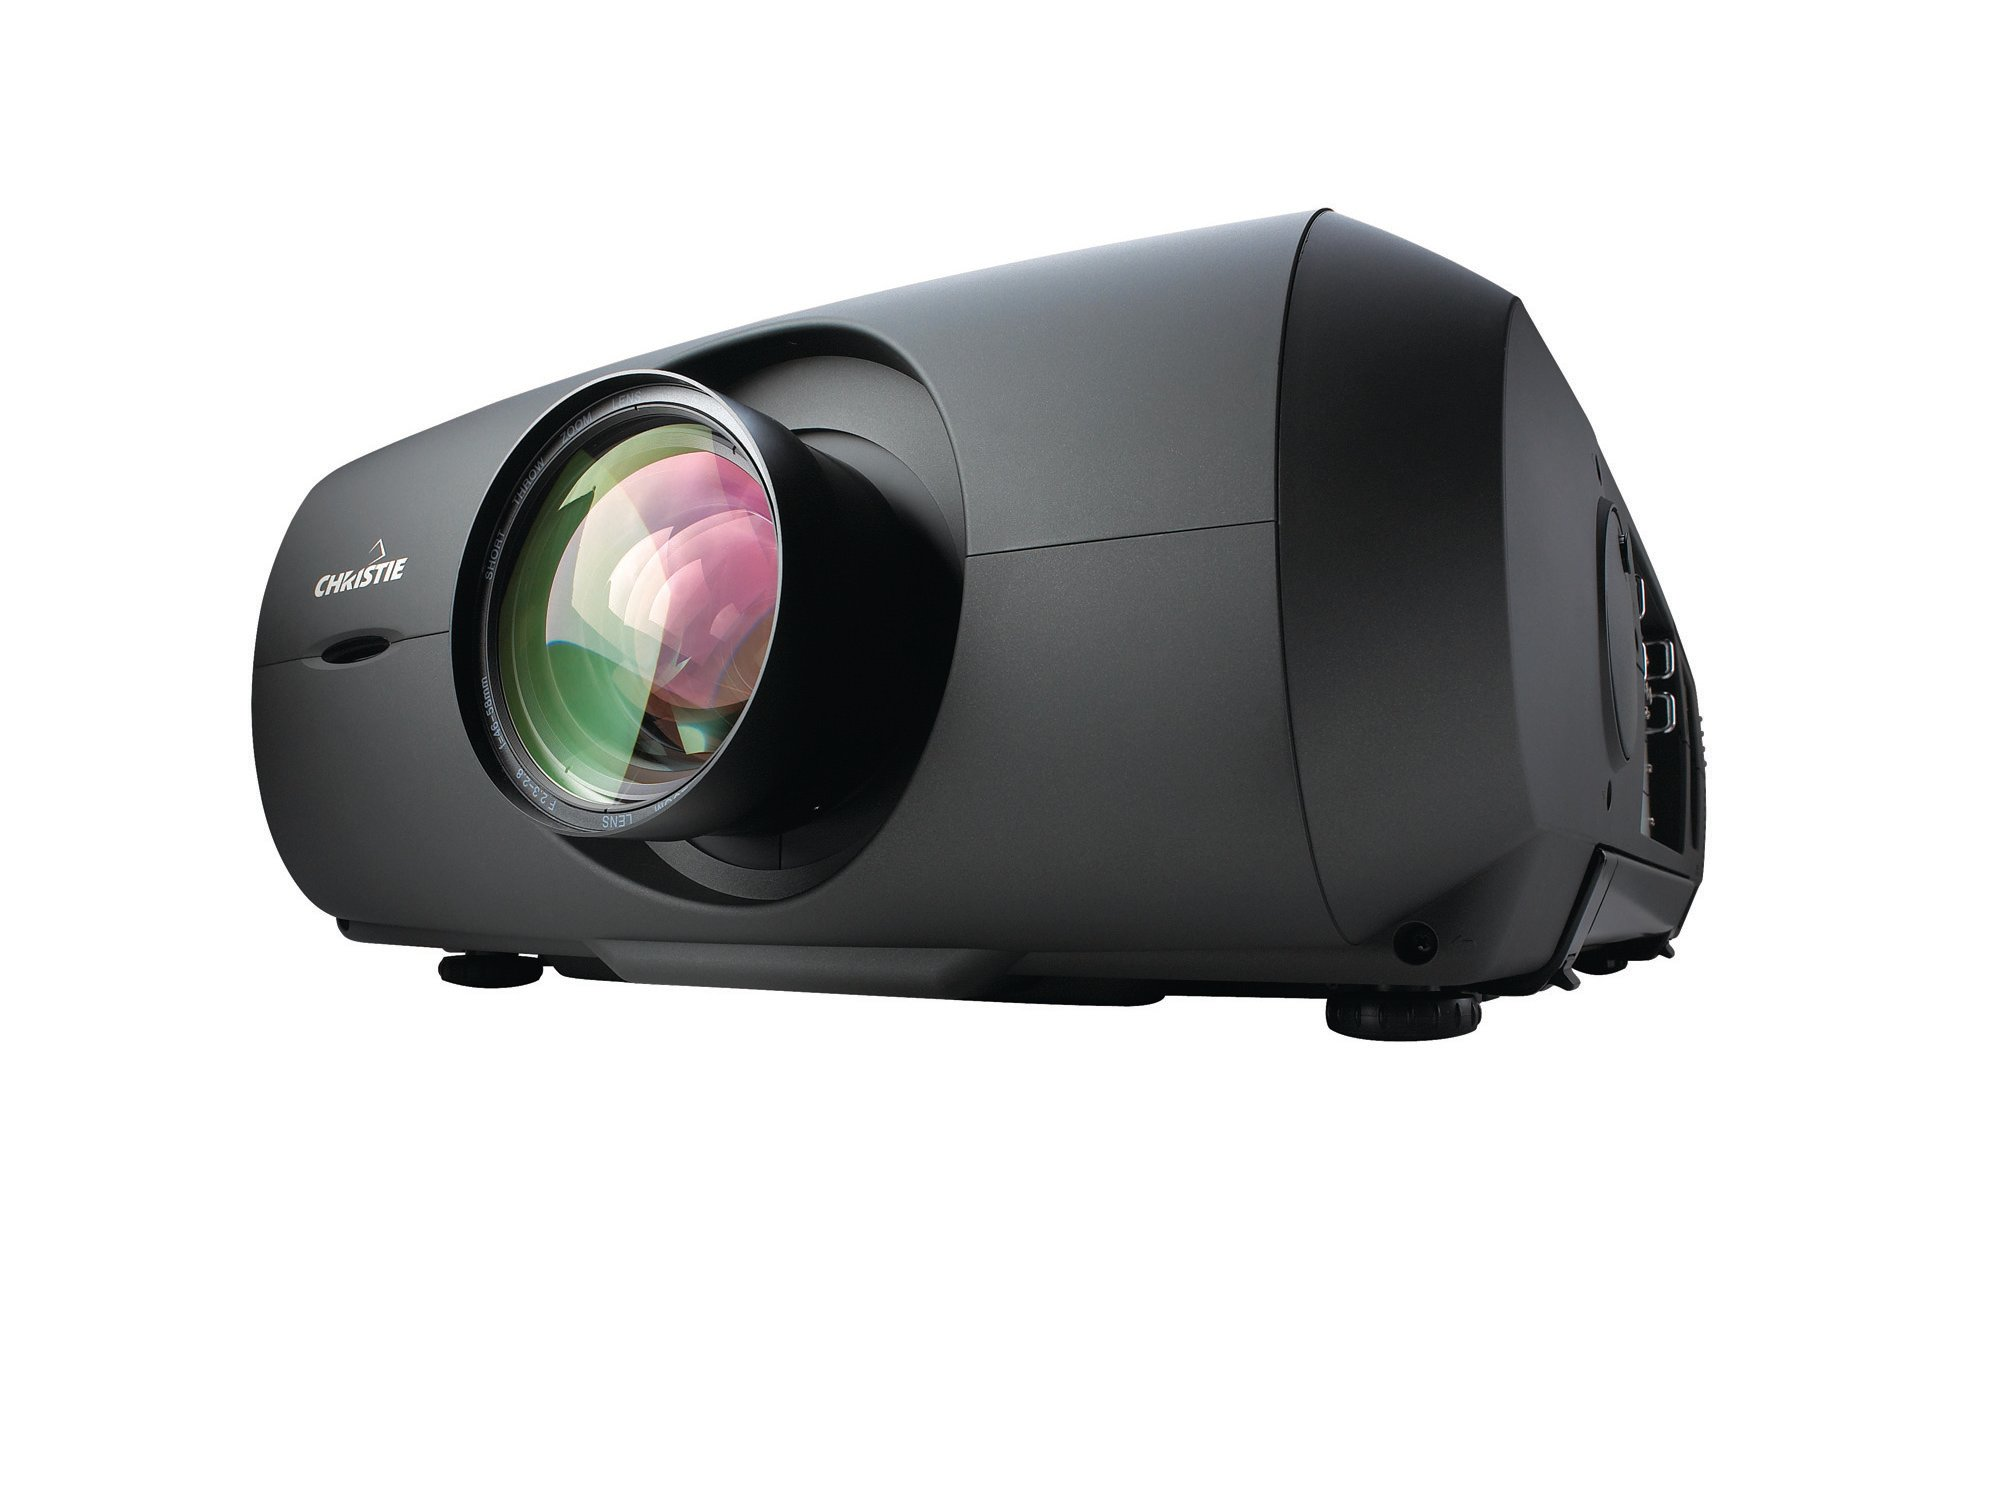 /globalassets/.catalog/products/images/christie-lx1500/gallery/christie-lx1500-lcd-projector-lowright.jpg